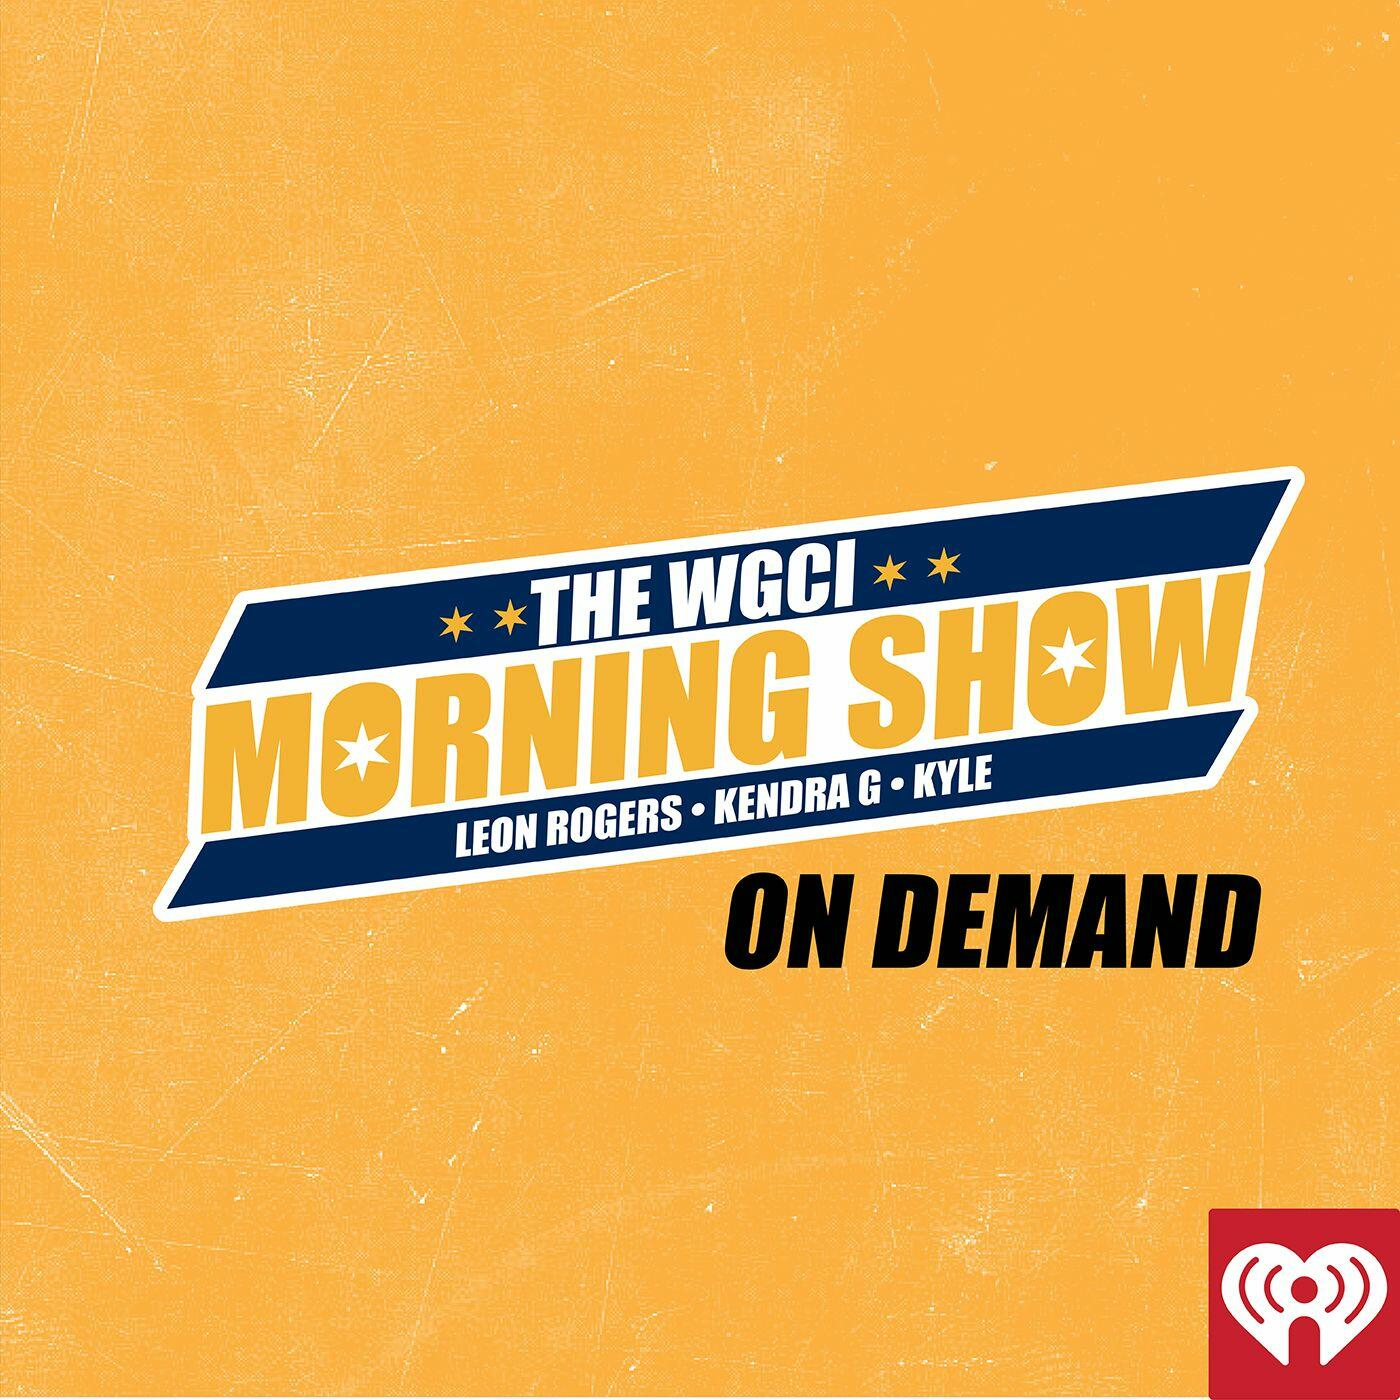 The WGCI Morning Show On Demand